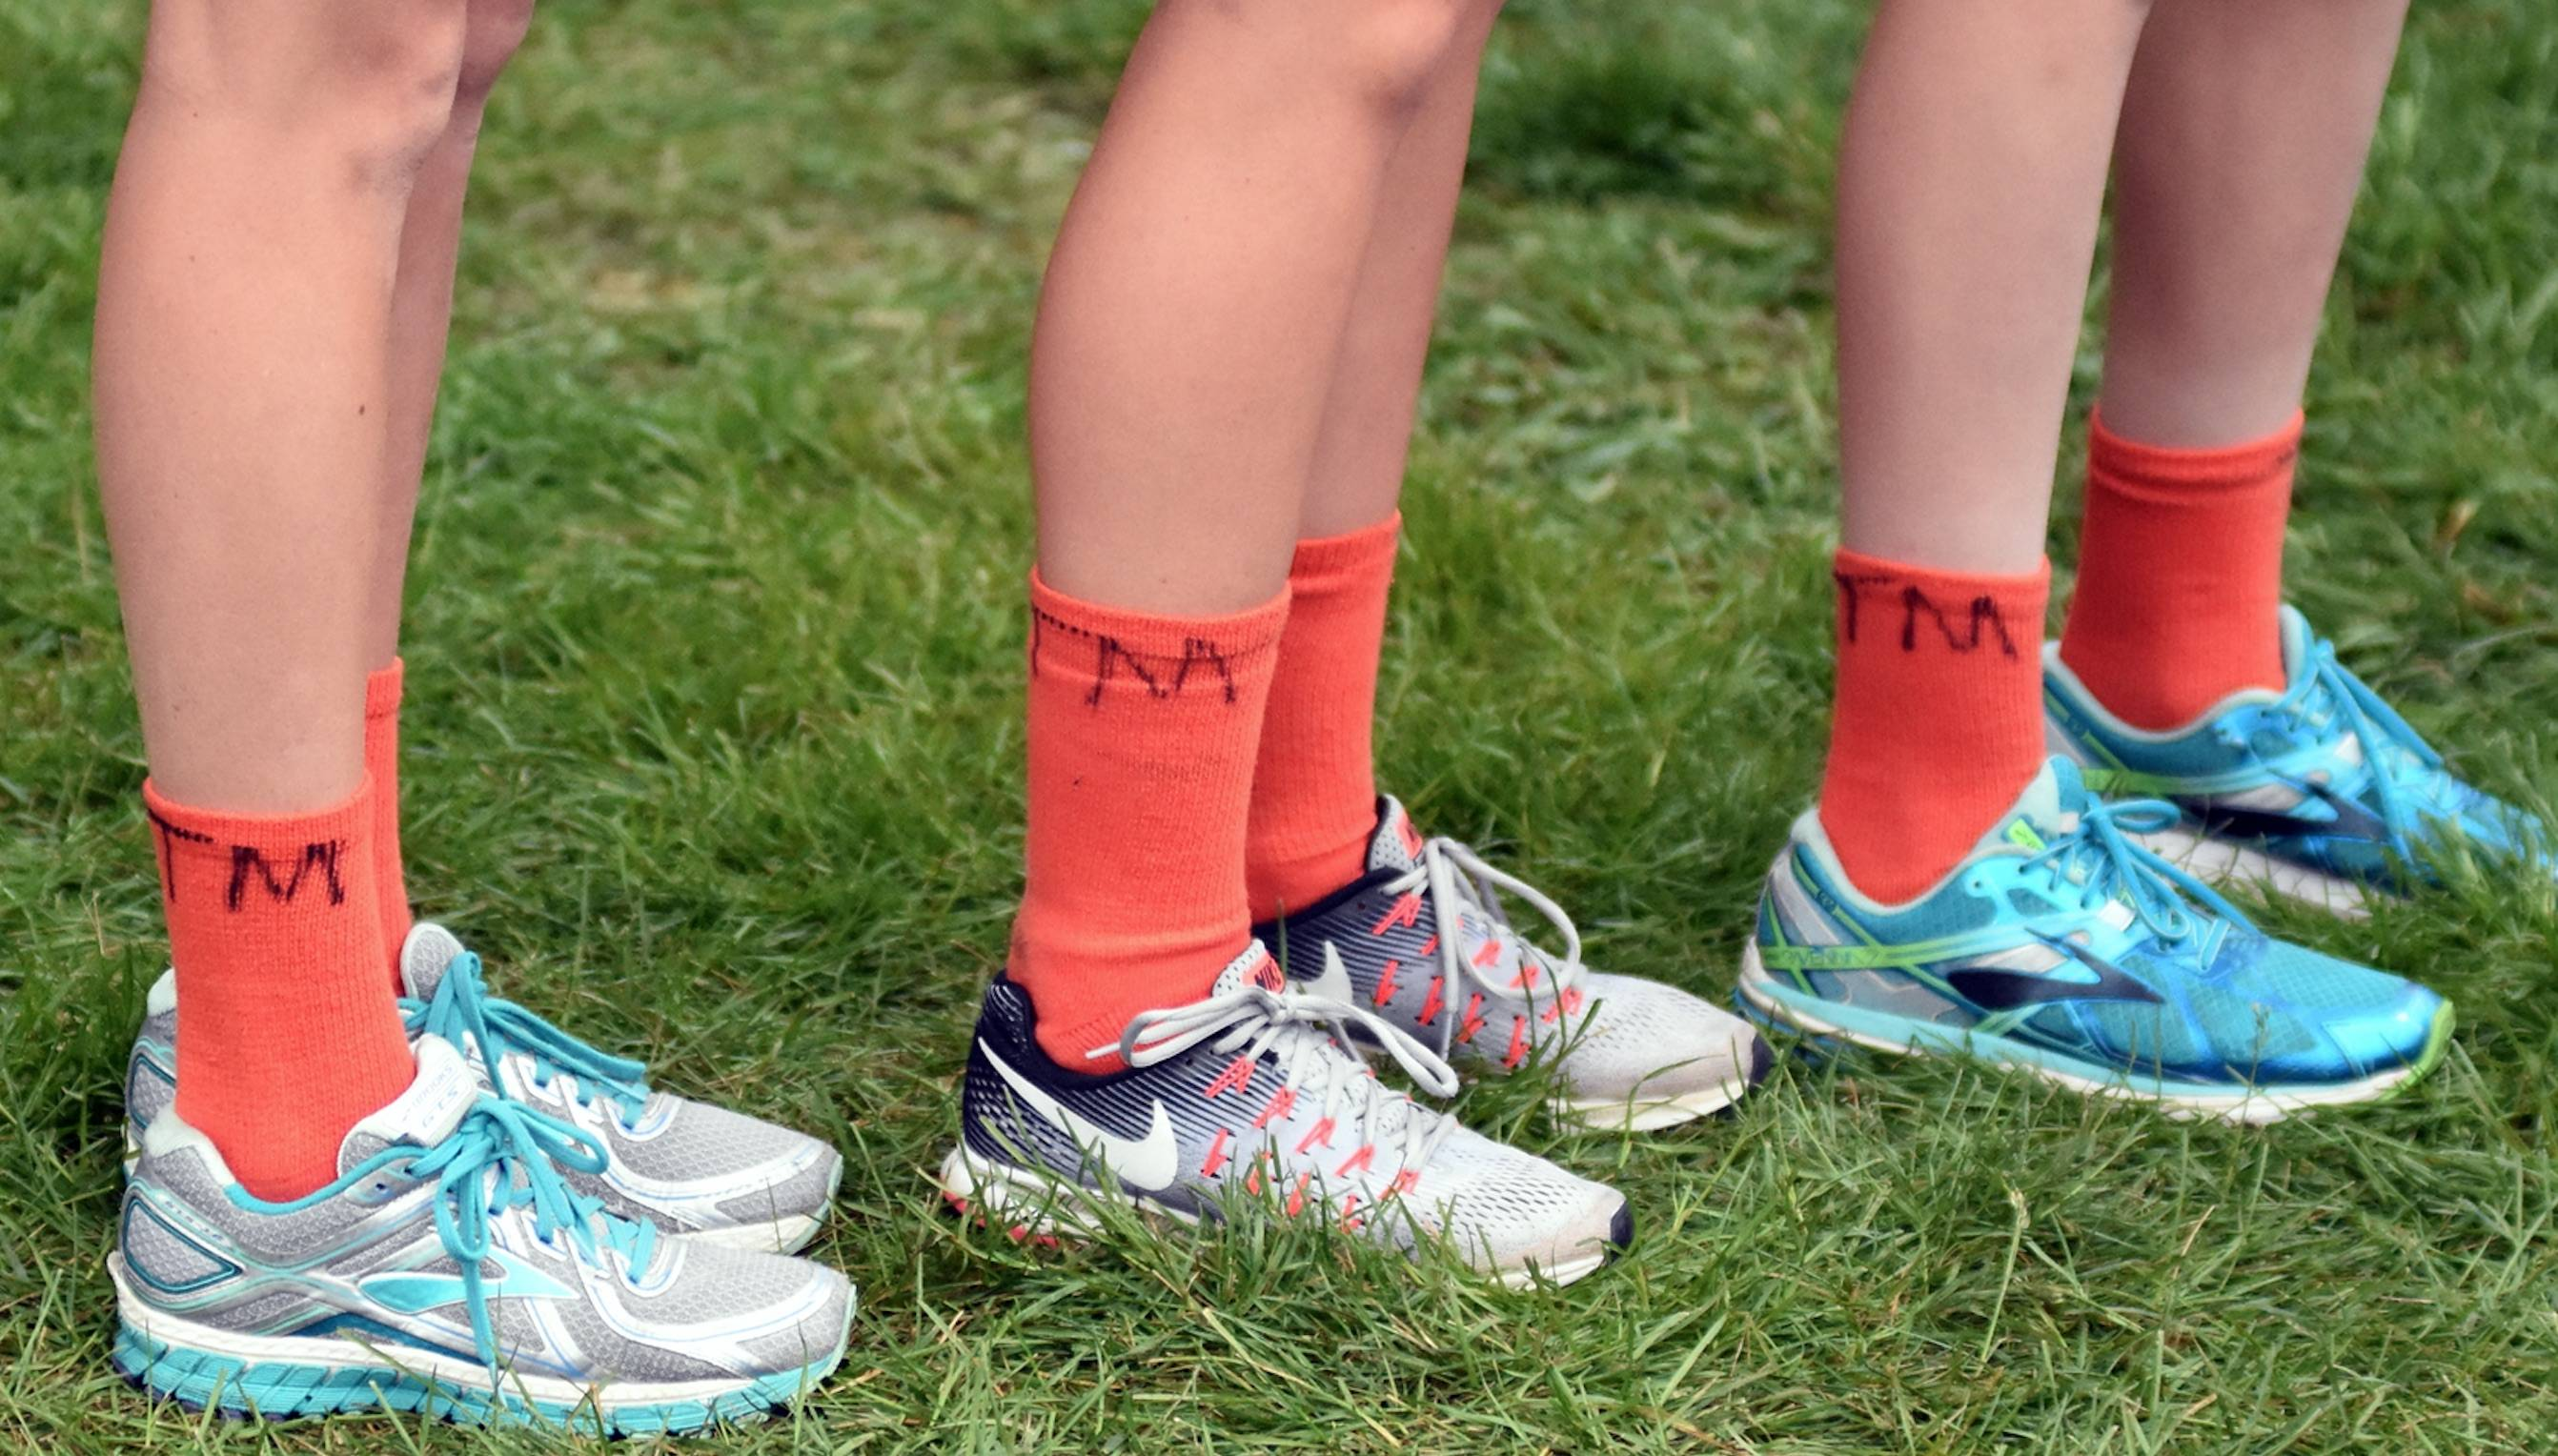 Track runners socks with TM written on them